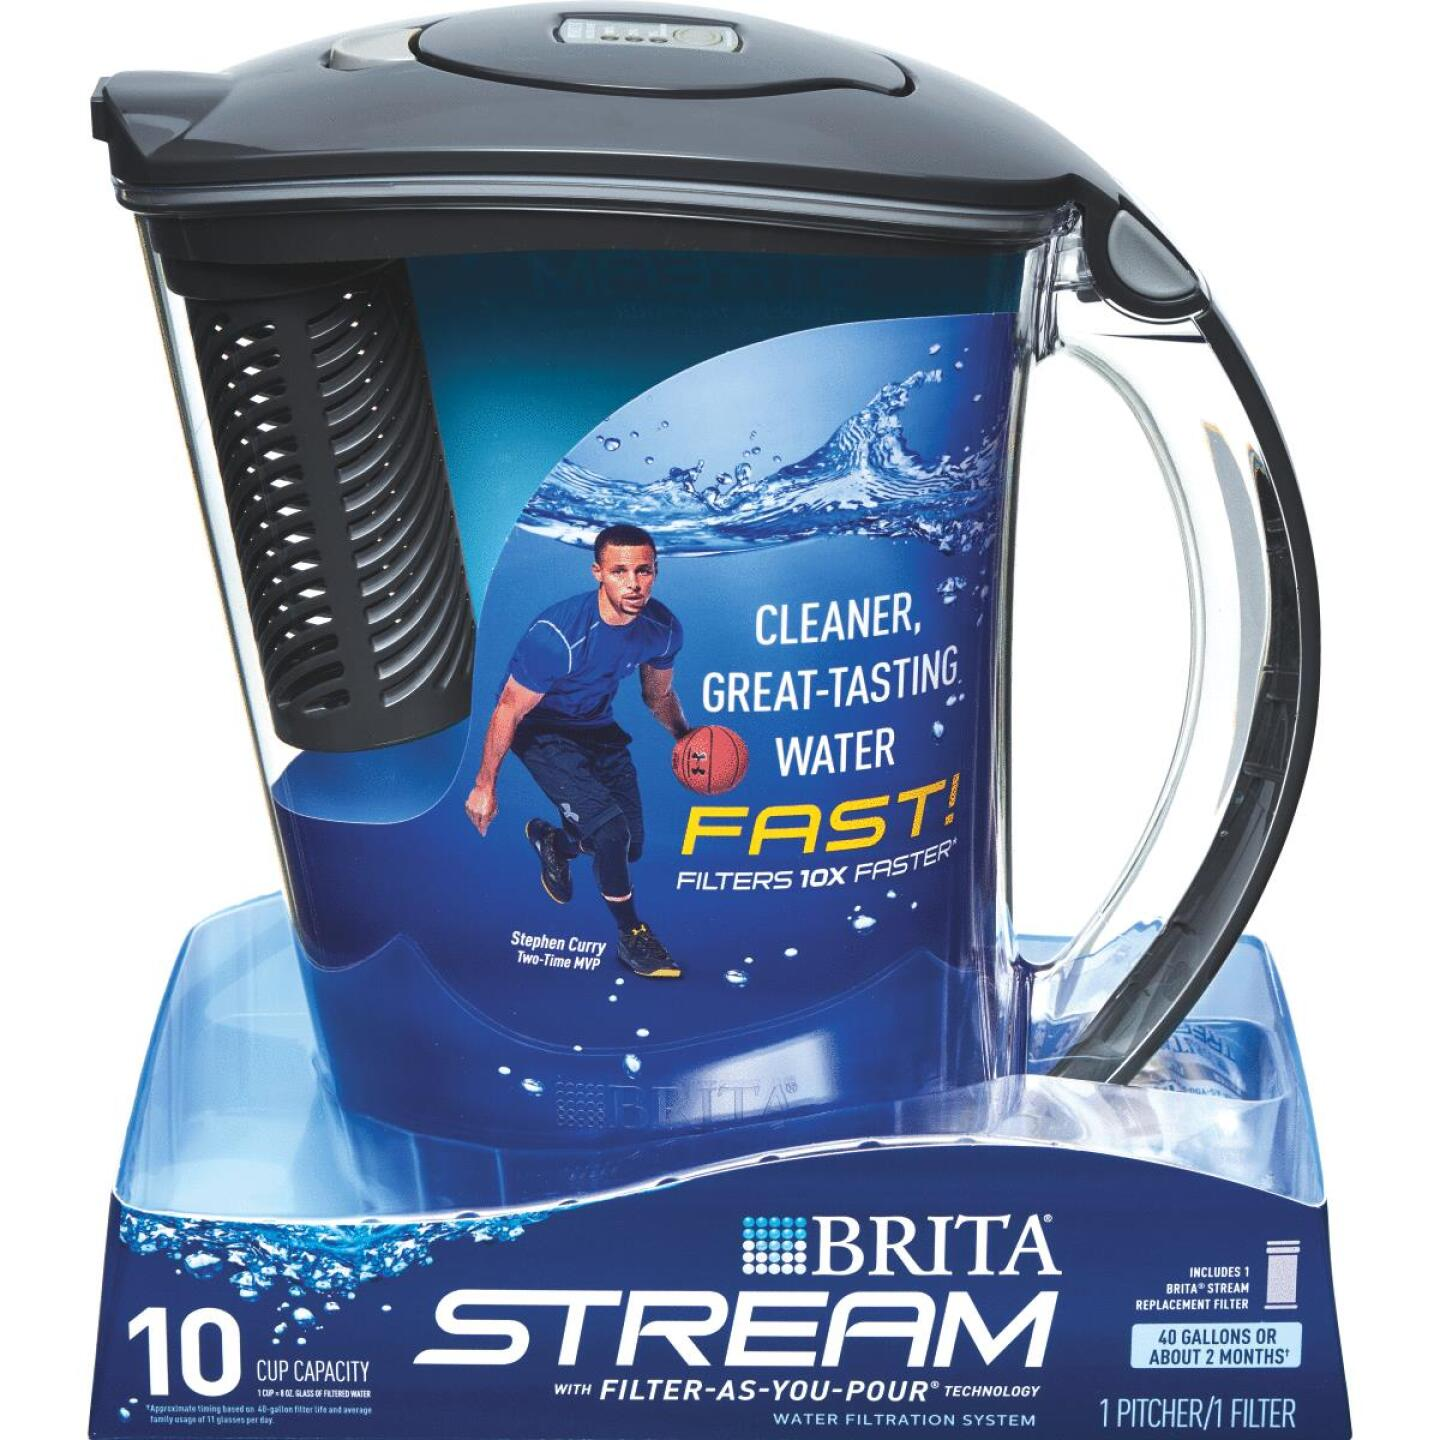 Brita Stream Rapids 10-Cup Gray Filter-As-You-Pour Pitcher Image 1